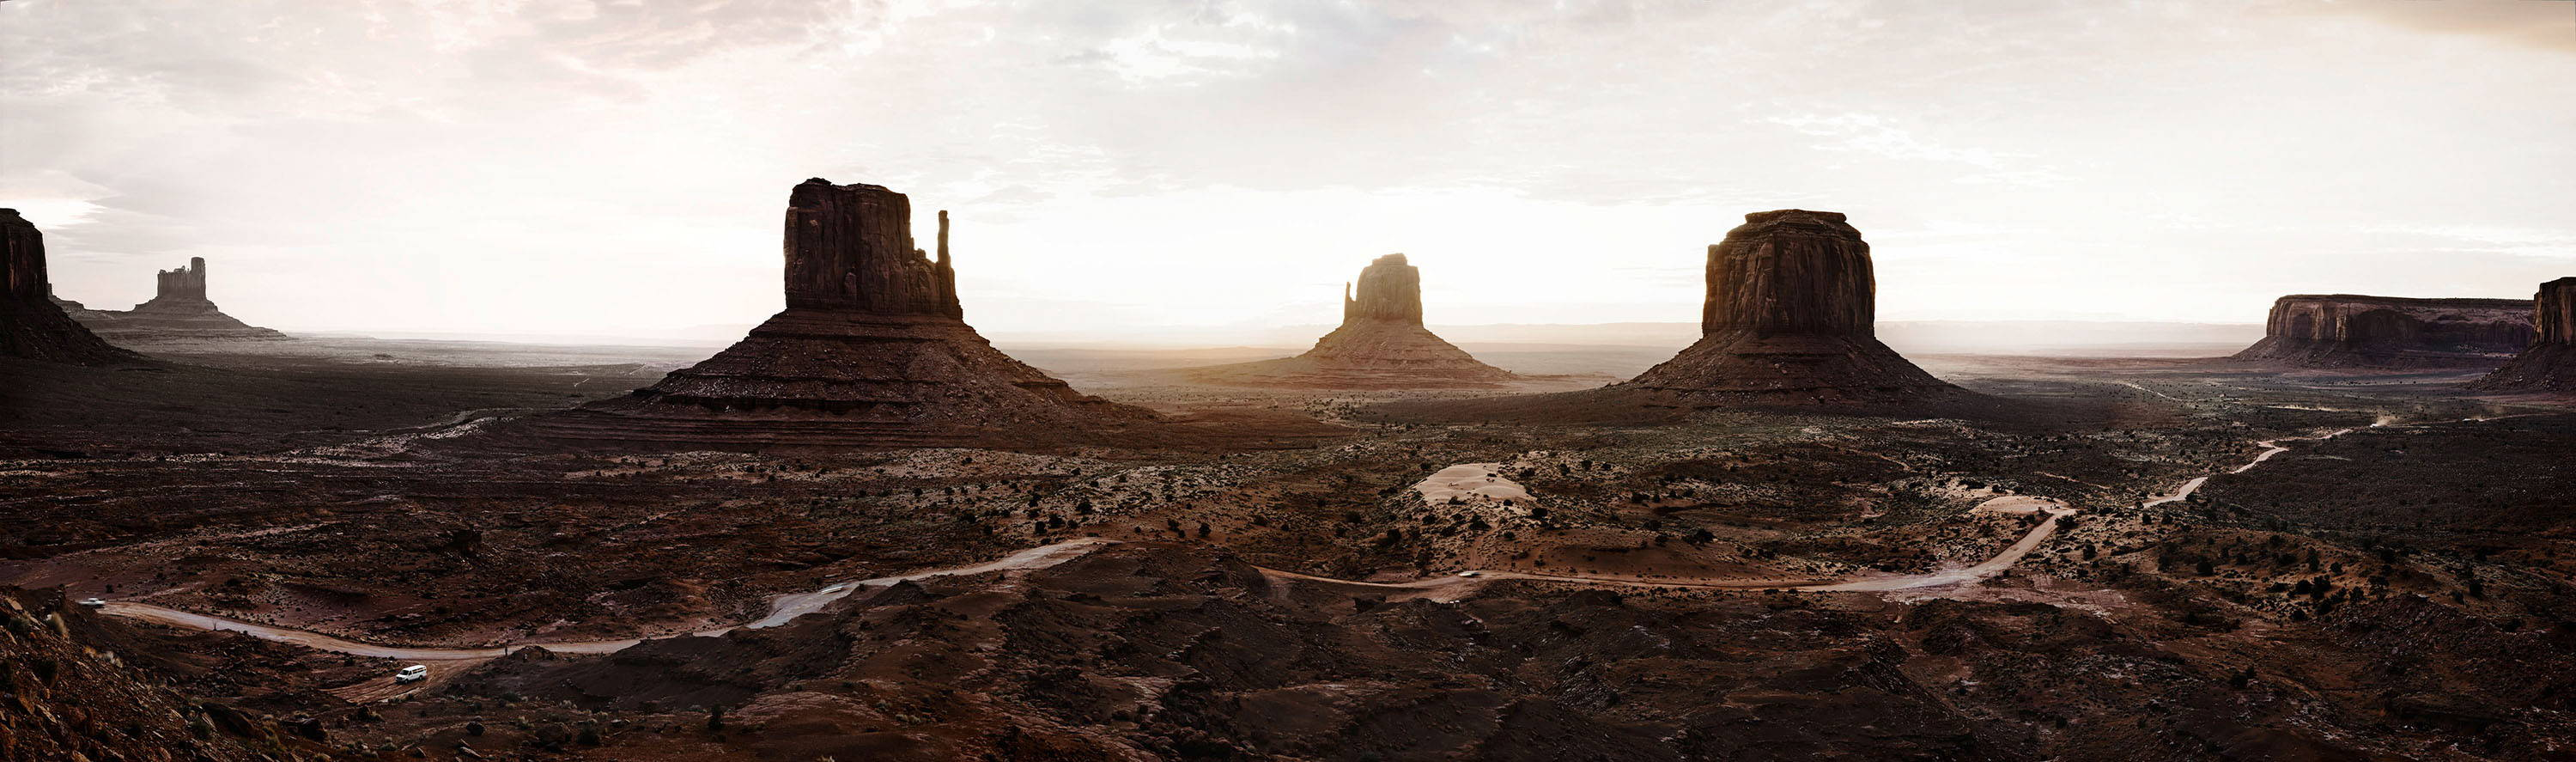 monument valley landscape photo iworkcase on location